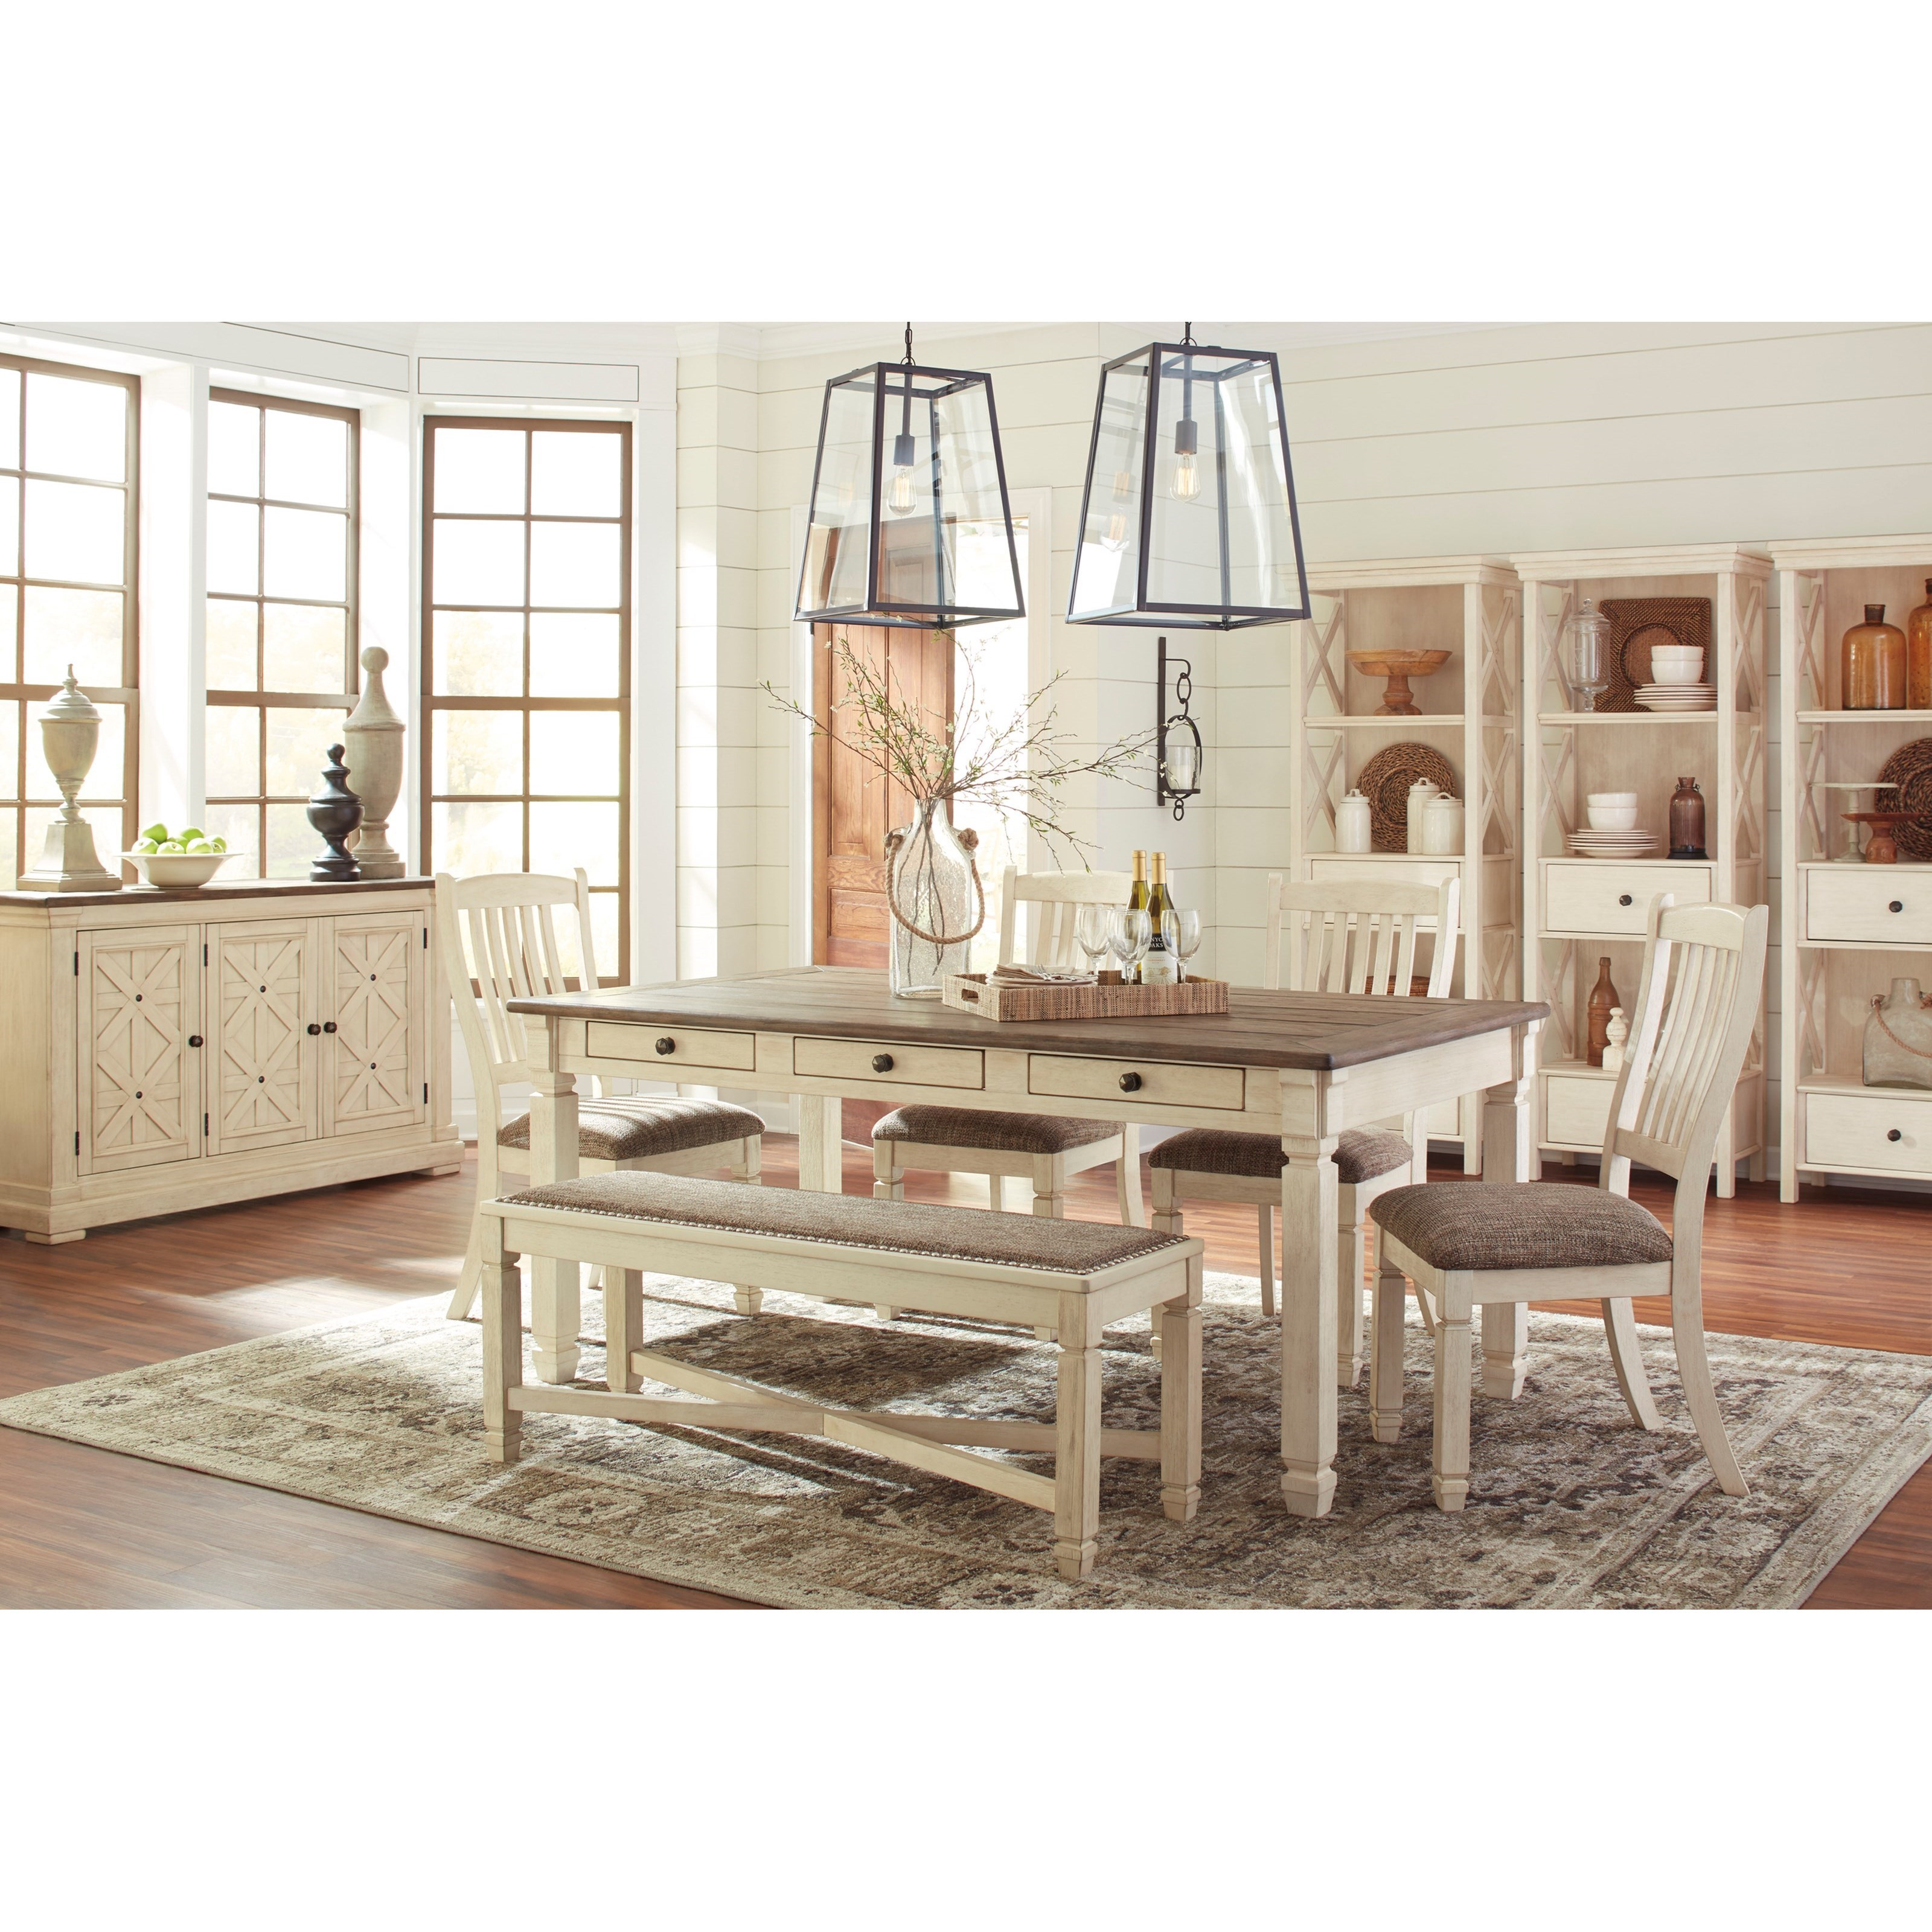 Signature design by ashley bolanburg casual dining room for Wayside furniture